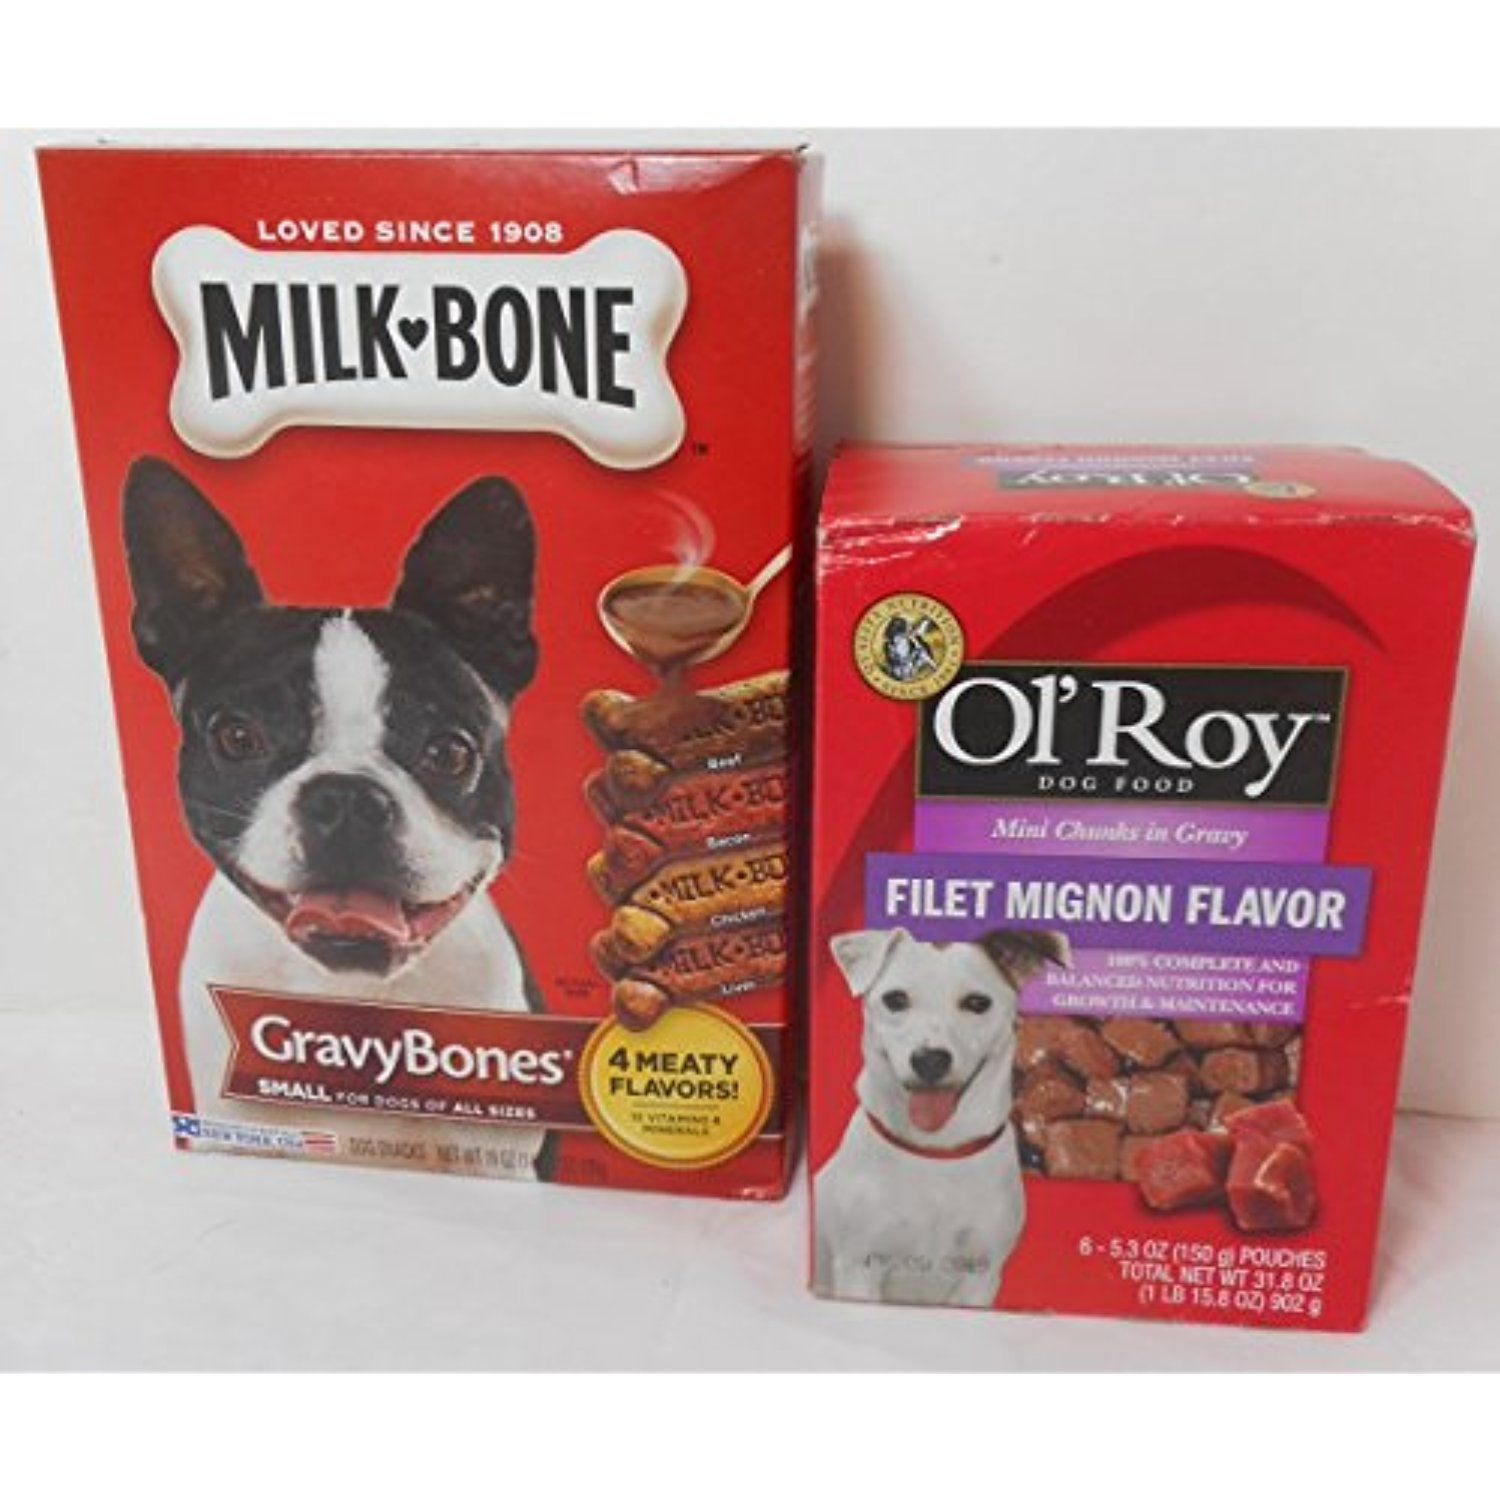 19 Oz Milk Bone Small Gravy Bones Dog Snacks 31 8 Oz 6 5 3 Oz